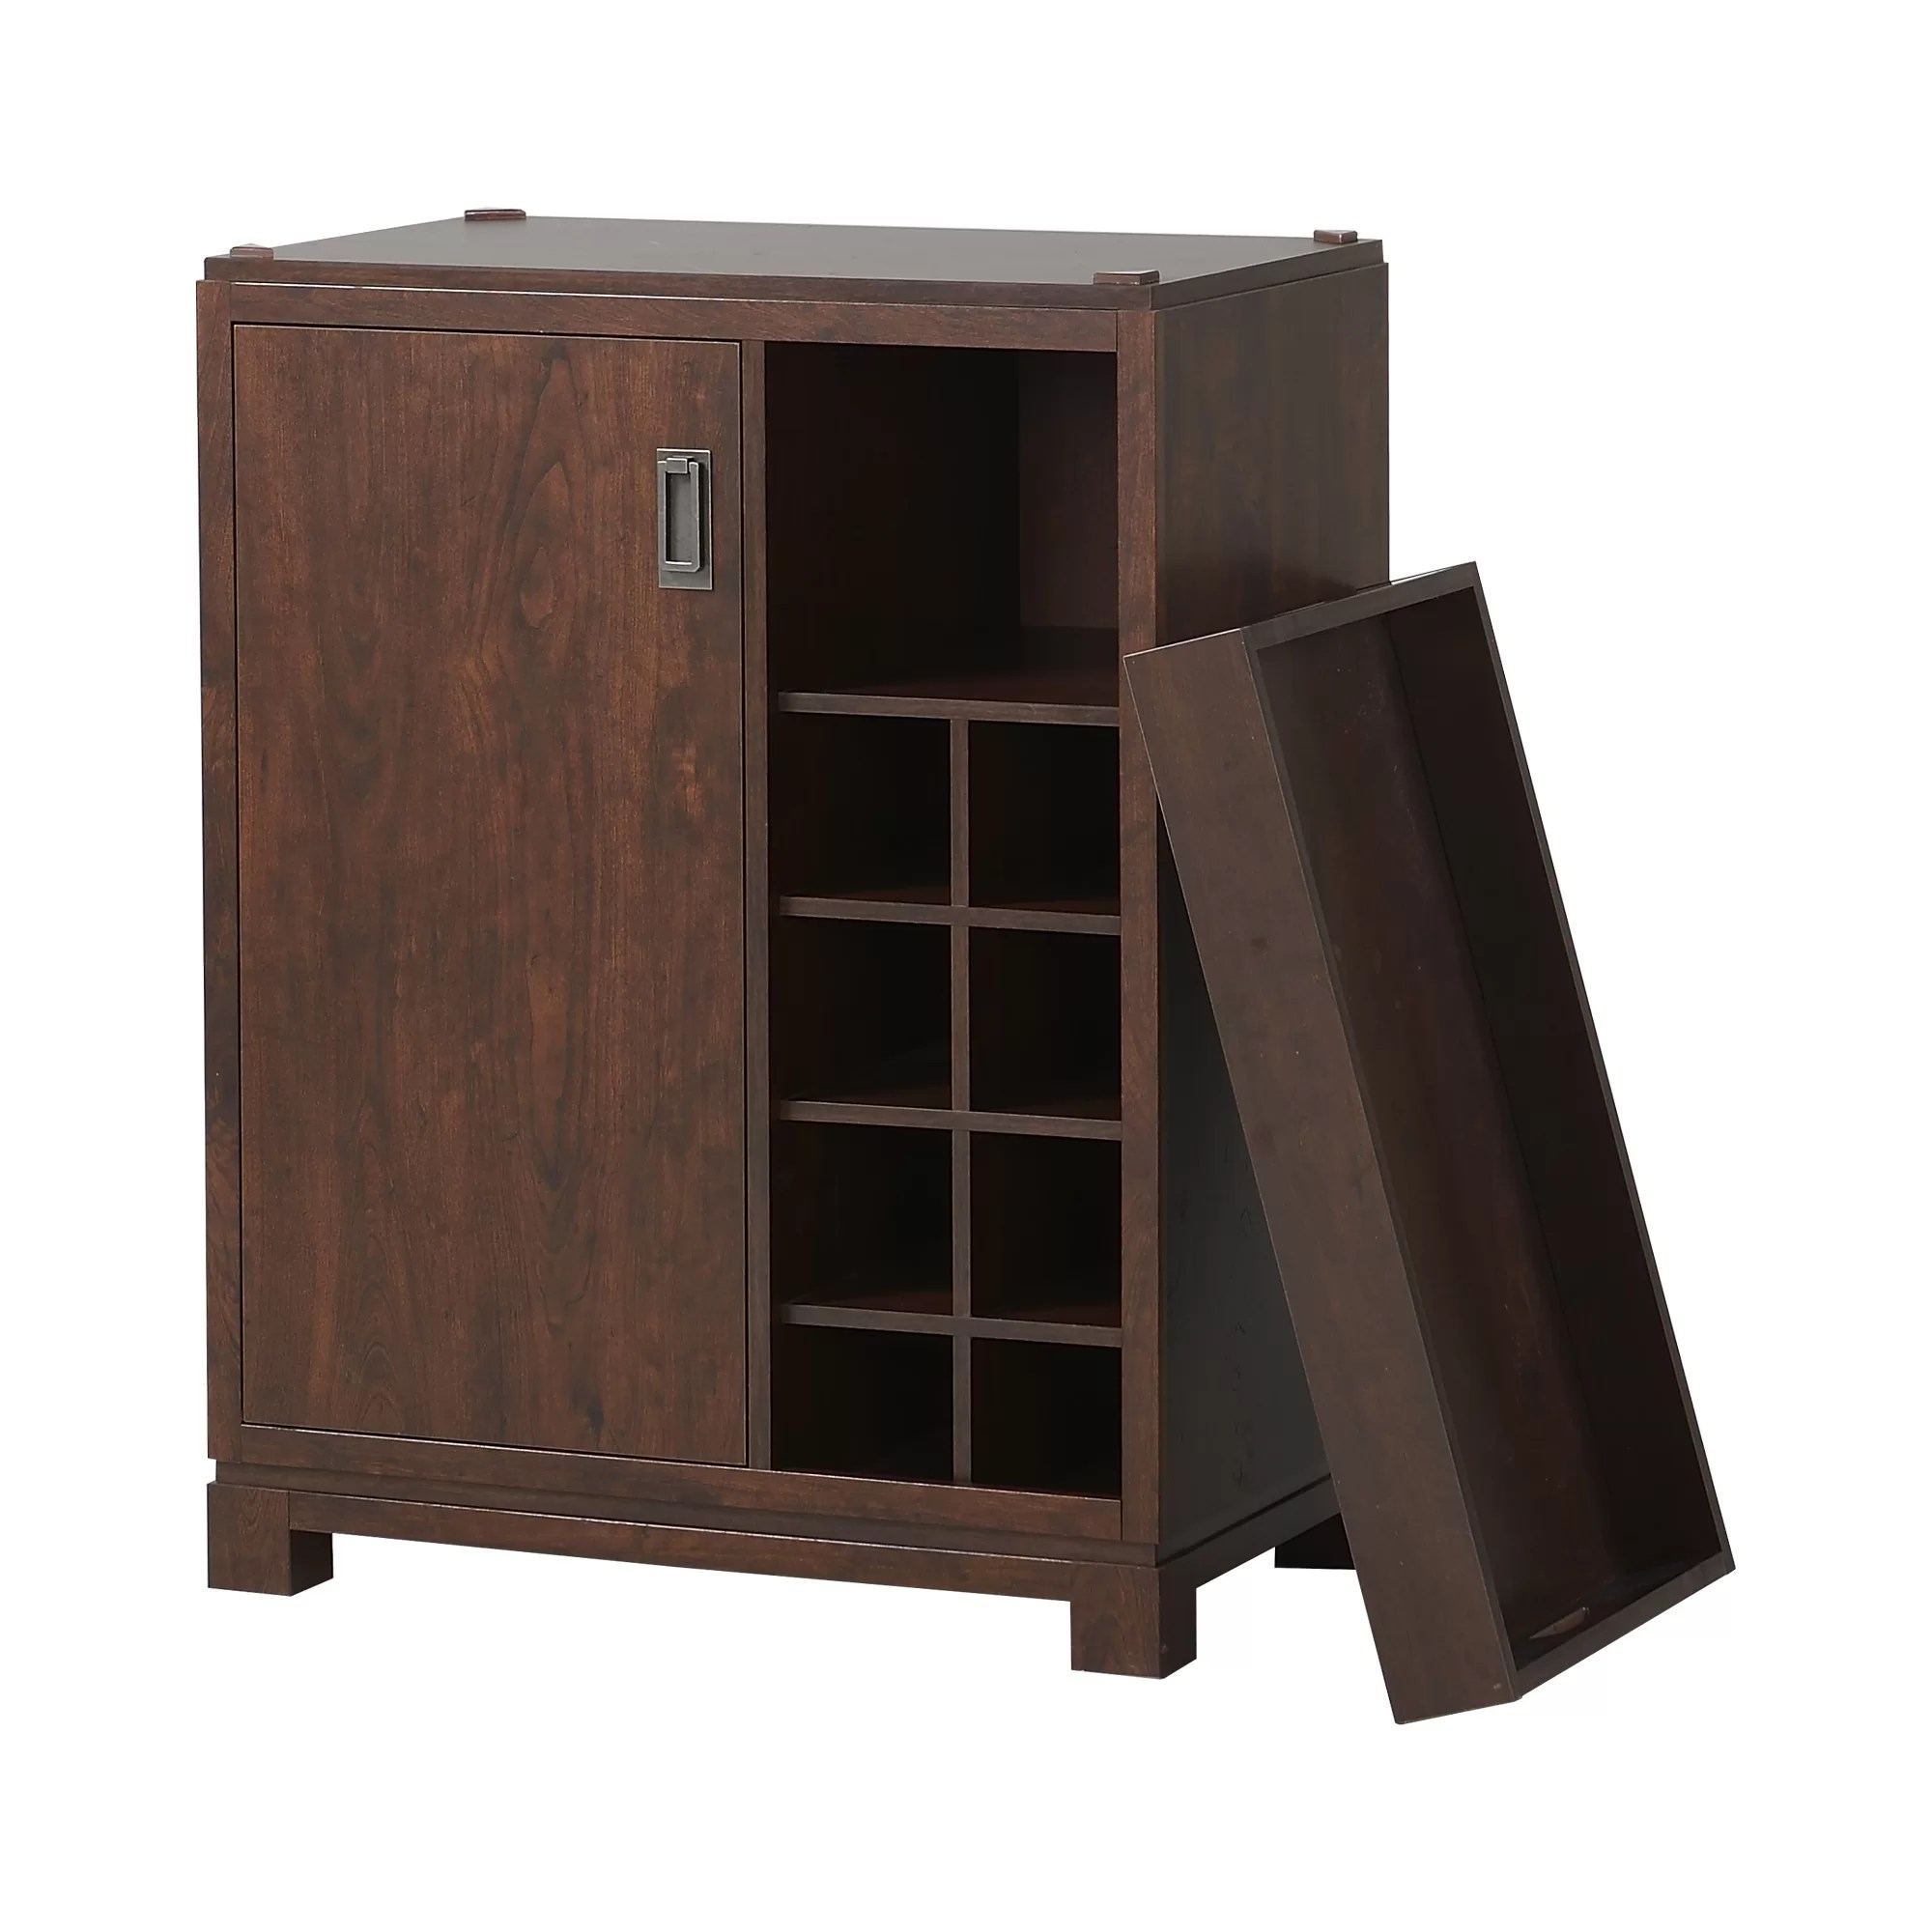 Small Wine Storage Cabinets Homestar Bar Cabinet With Wine Storage And Reviews Wayfair